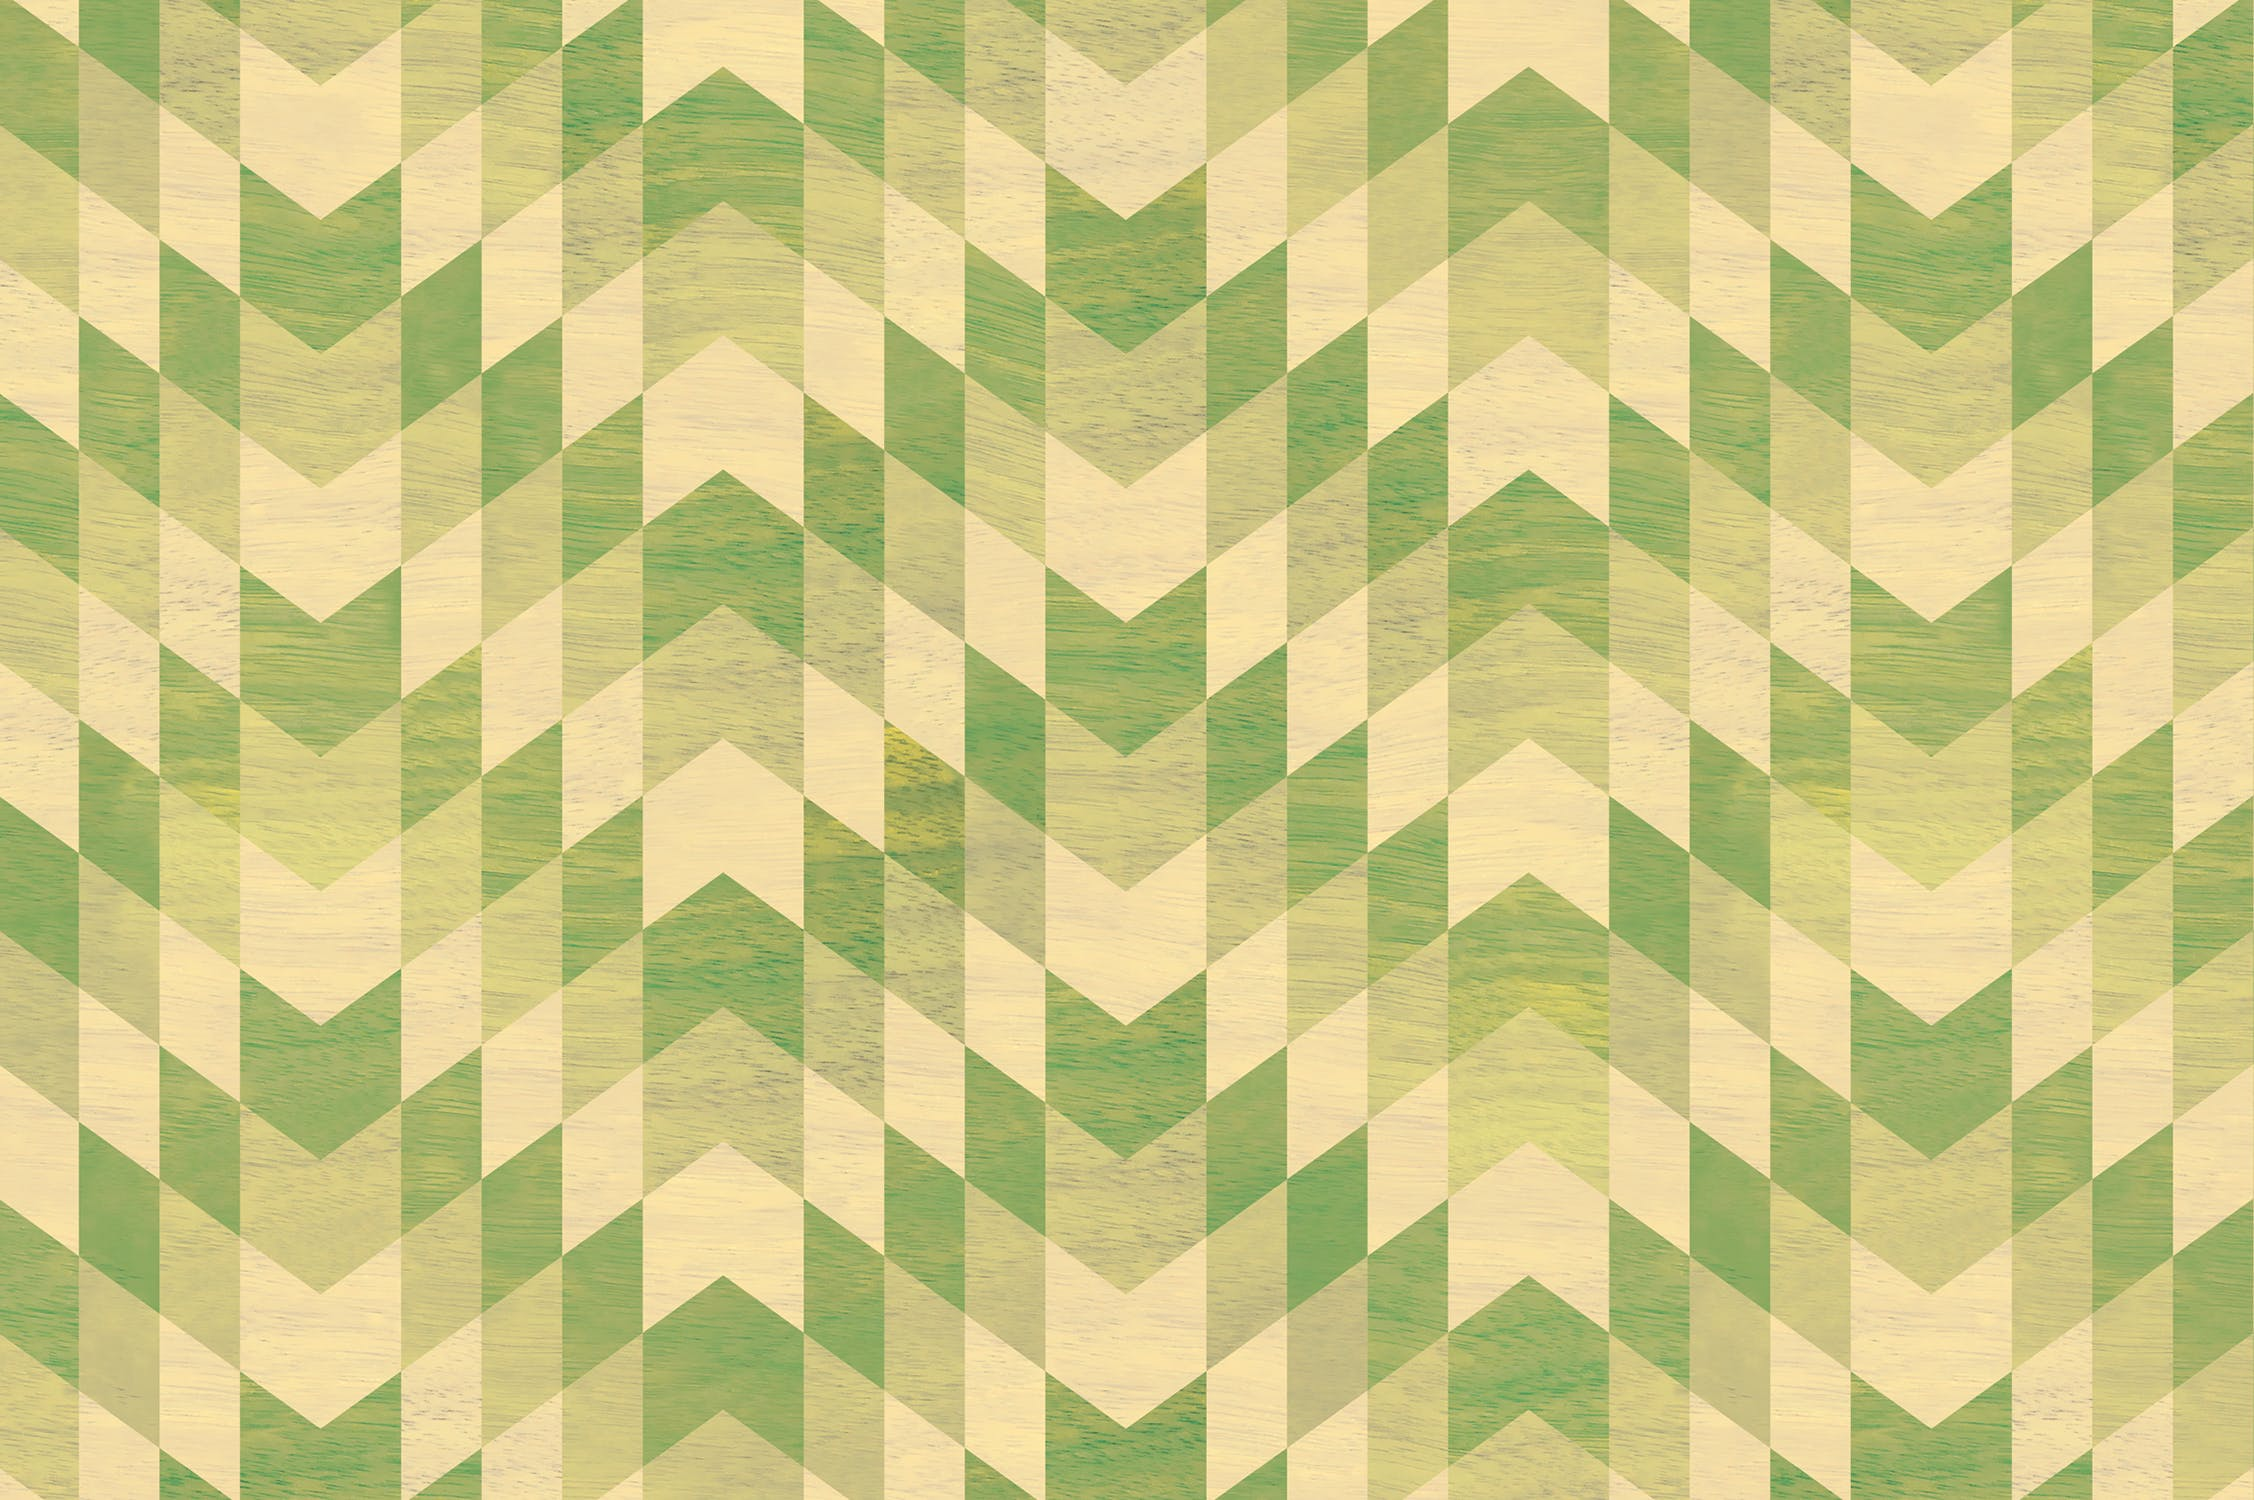 Geometric Marquetry Patterns by JRChild on Envato Elements